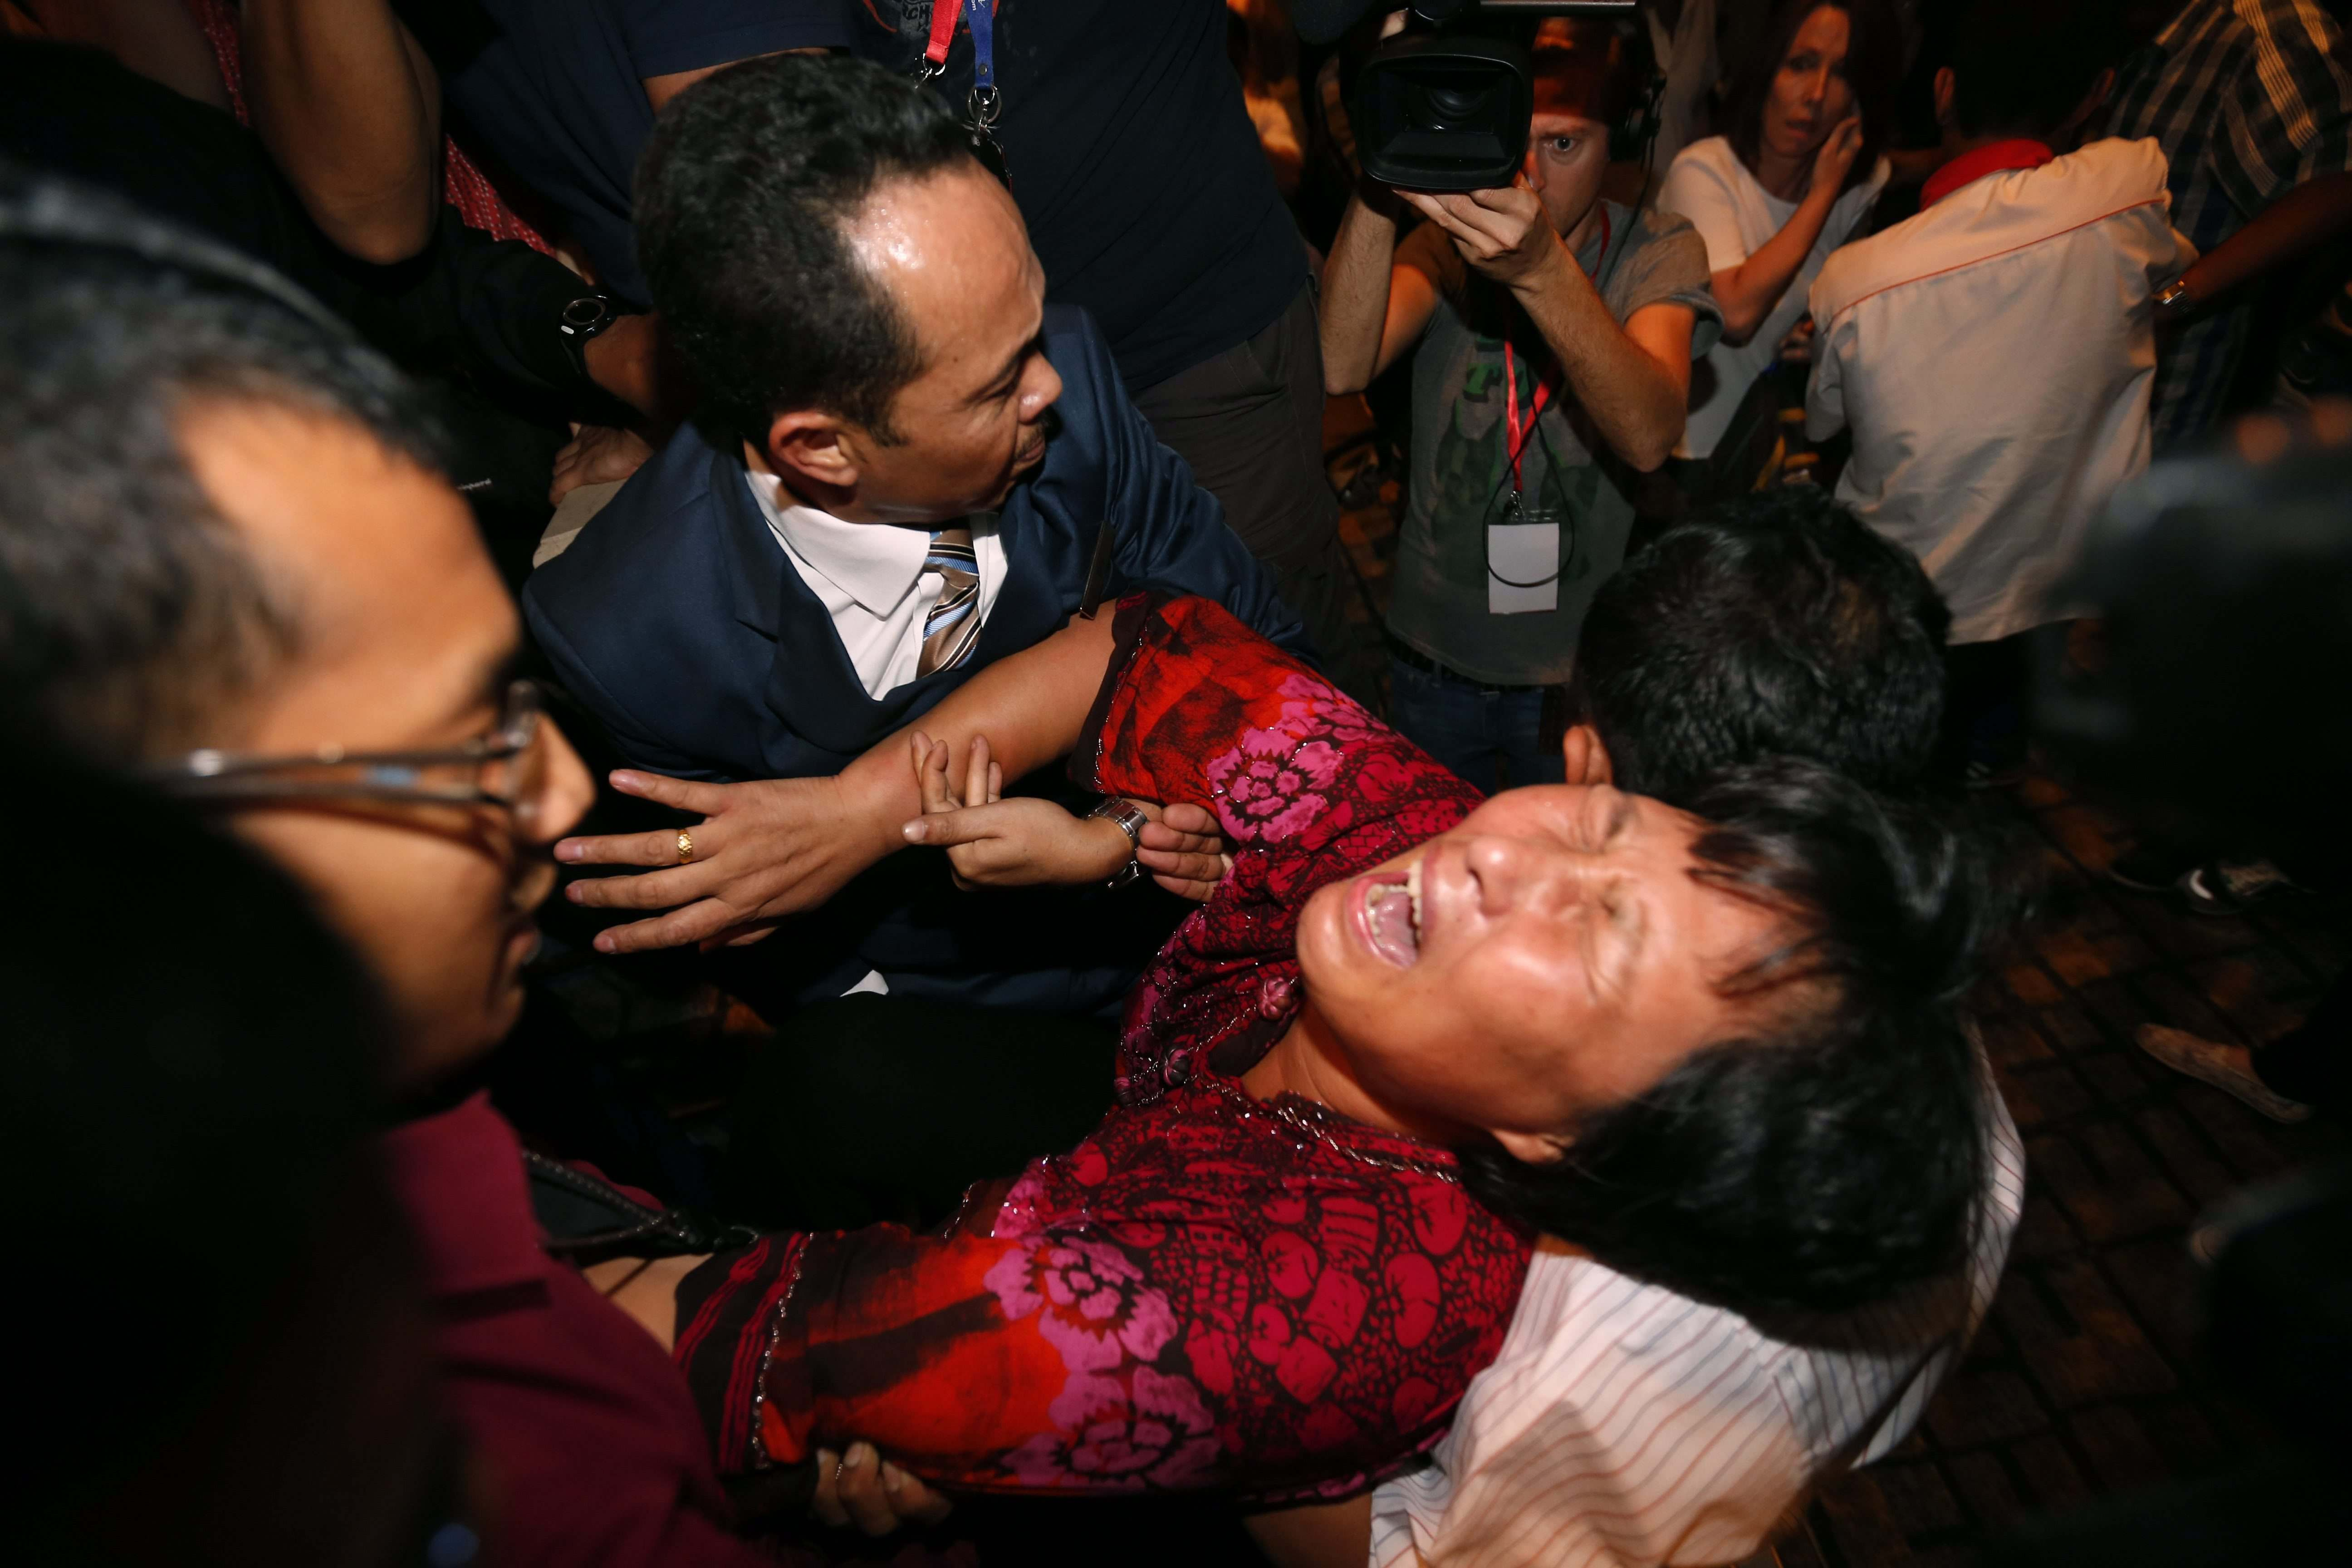 A Chinese relative of a passenger aboard a missing Malaysia Airlines plane is carried out by security officials as she protests before a press conference at a hotel in Sepang, Malaysia, Wednesday, March 19, 2014. New radar data from Thailand gave Malaysian investigators more potential clues Wednesday for how to retrace the course of the missing Malaysian airliner, while a massive multinational search unfolded in an area the size of Australia. (AP Photo/Vincent Thian)